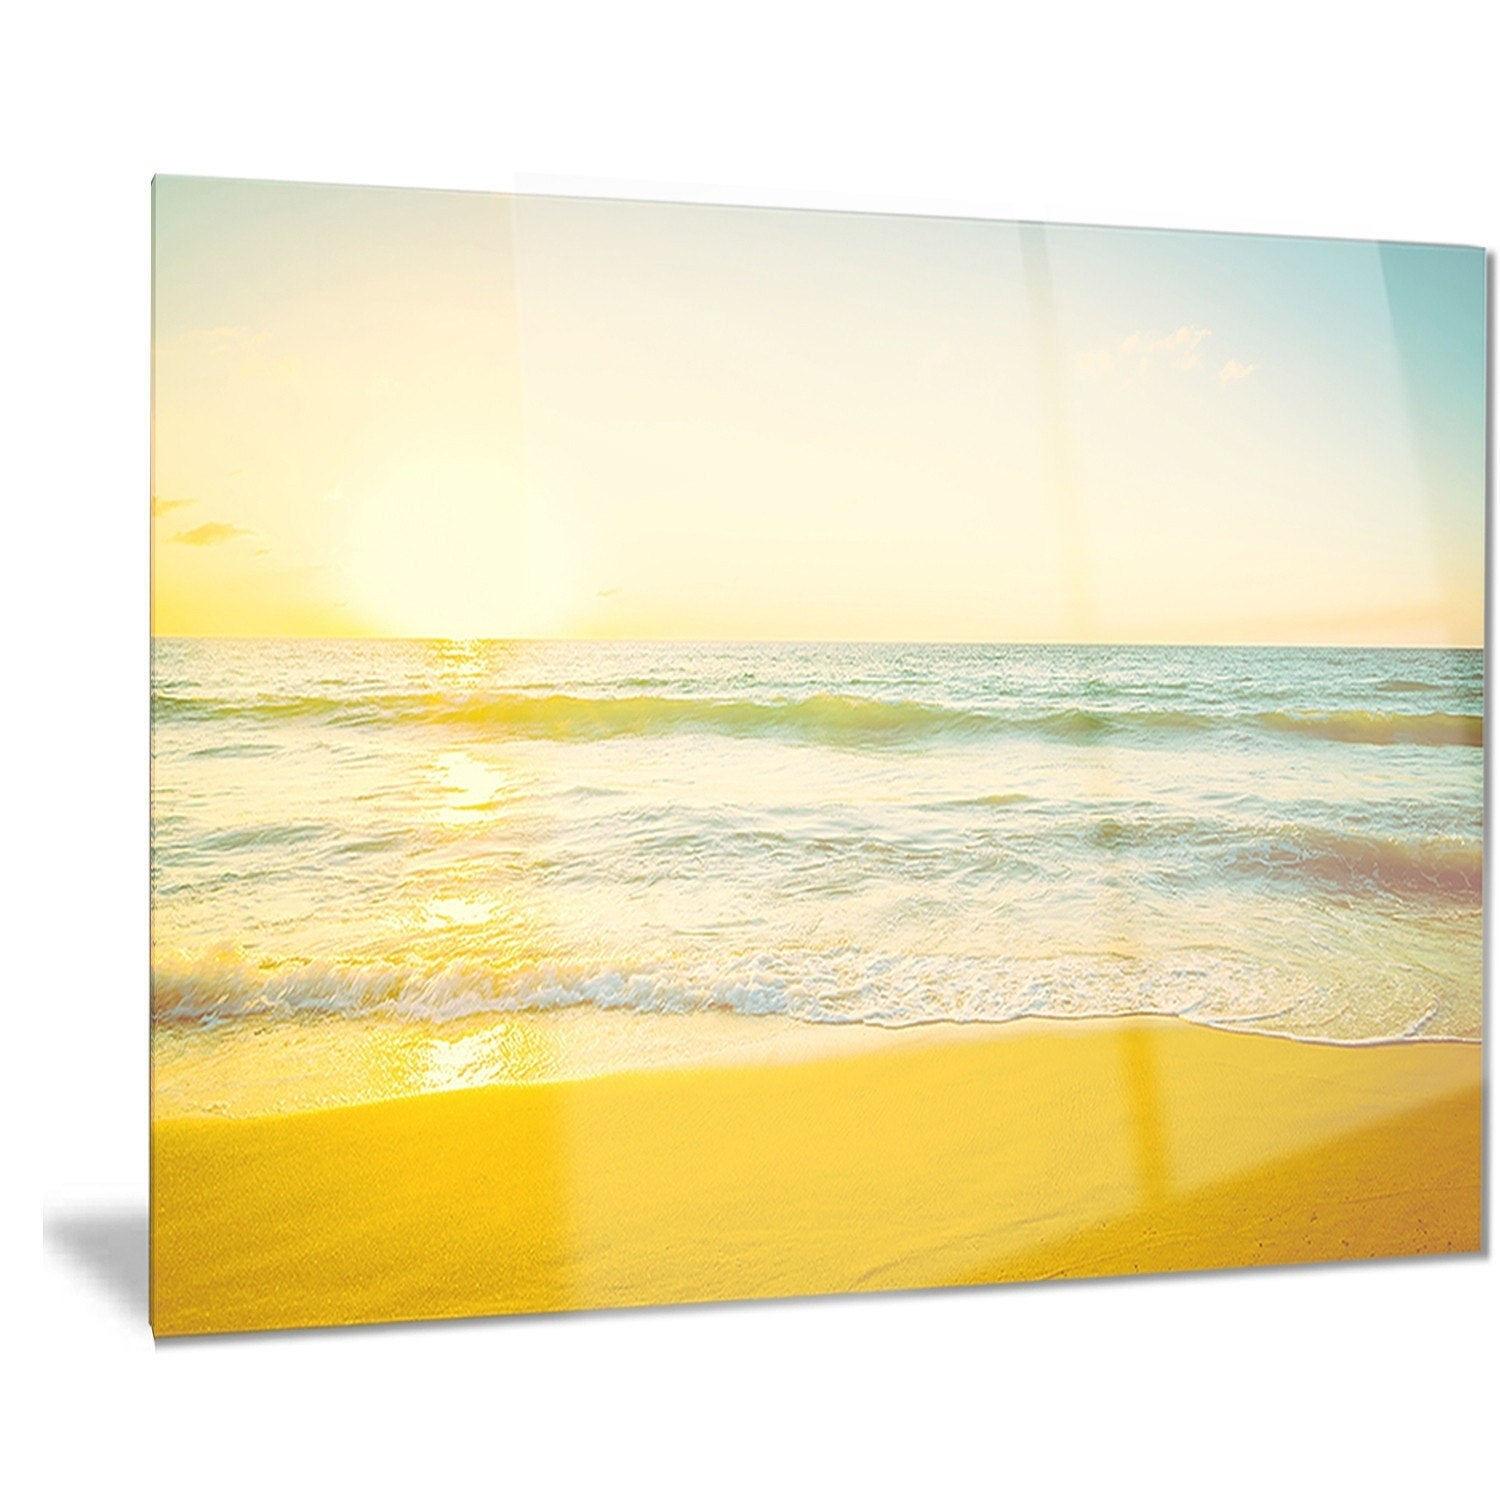 Stunning Wall Art Beach Scenes Images - The Wall Art Decorations ...